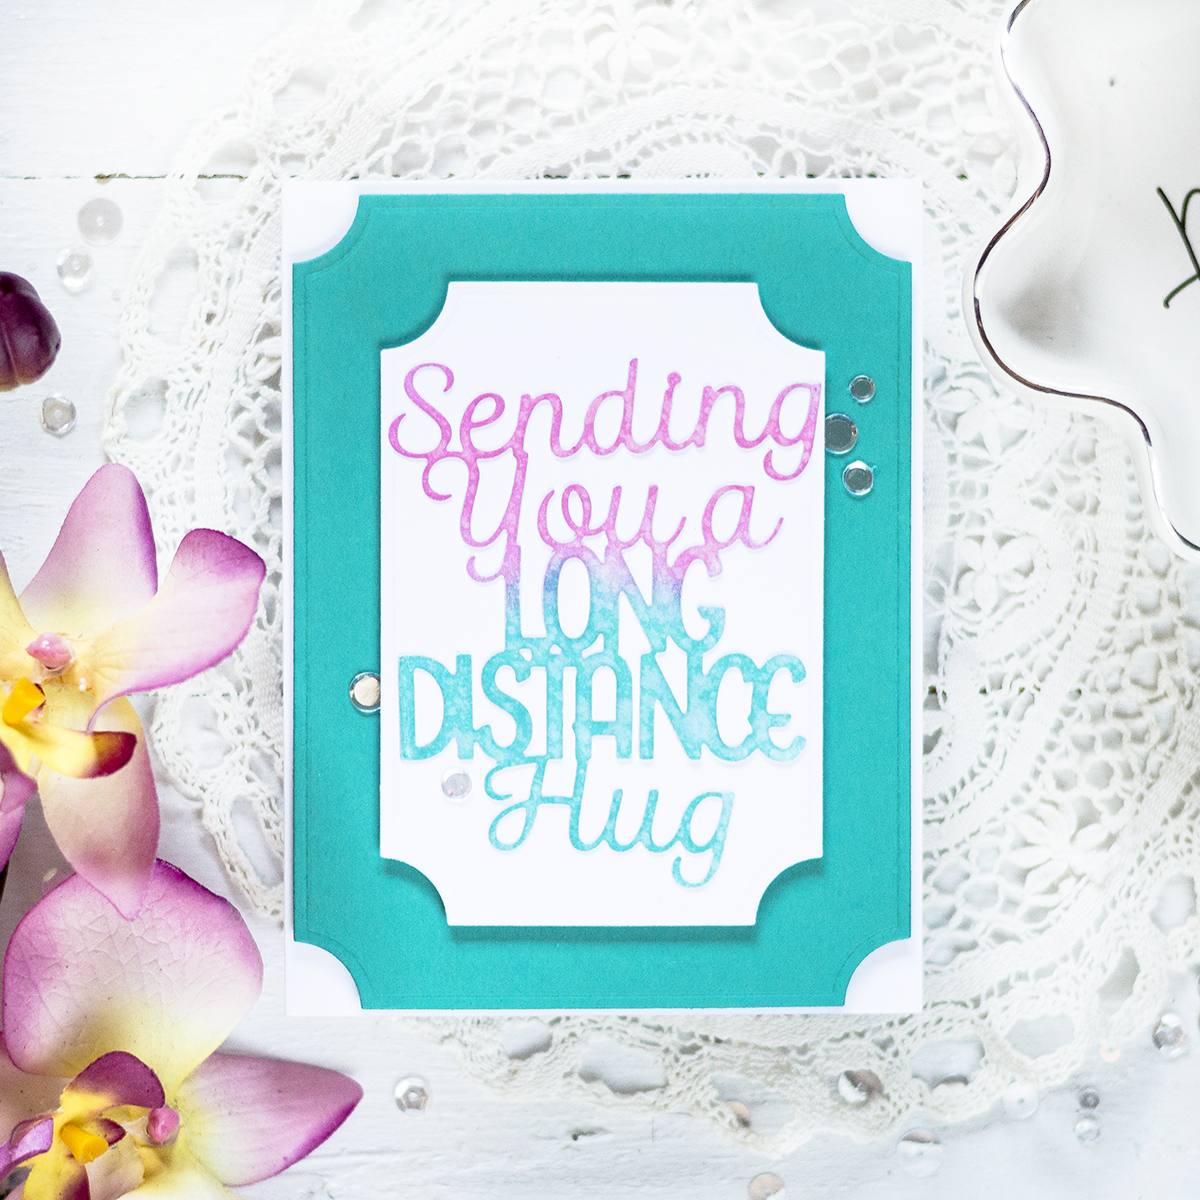 Long Distance Hugs Card. Card by Svitlana Shayevich